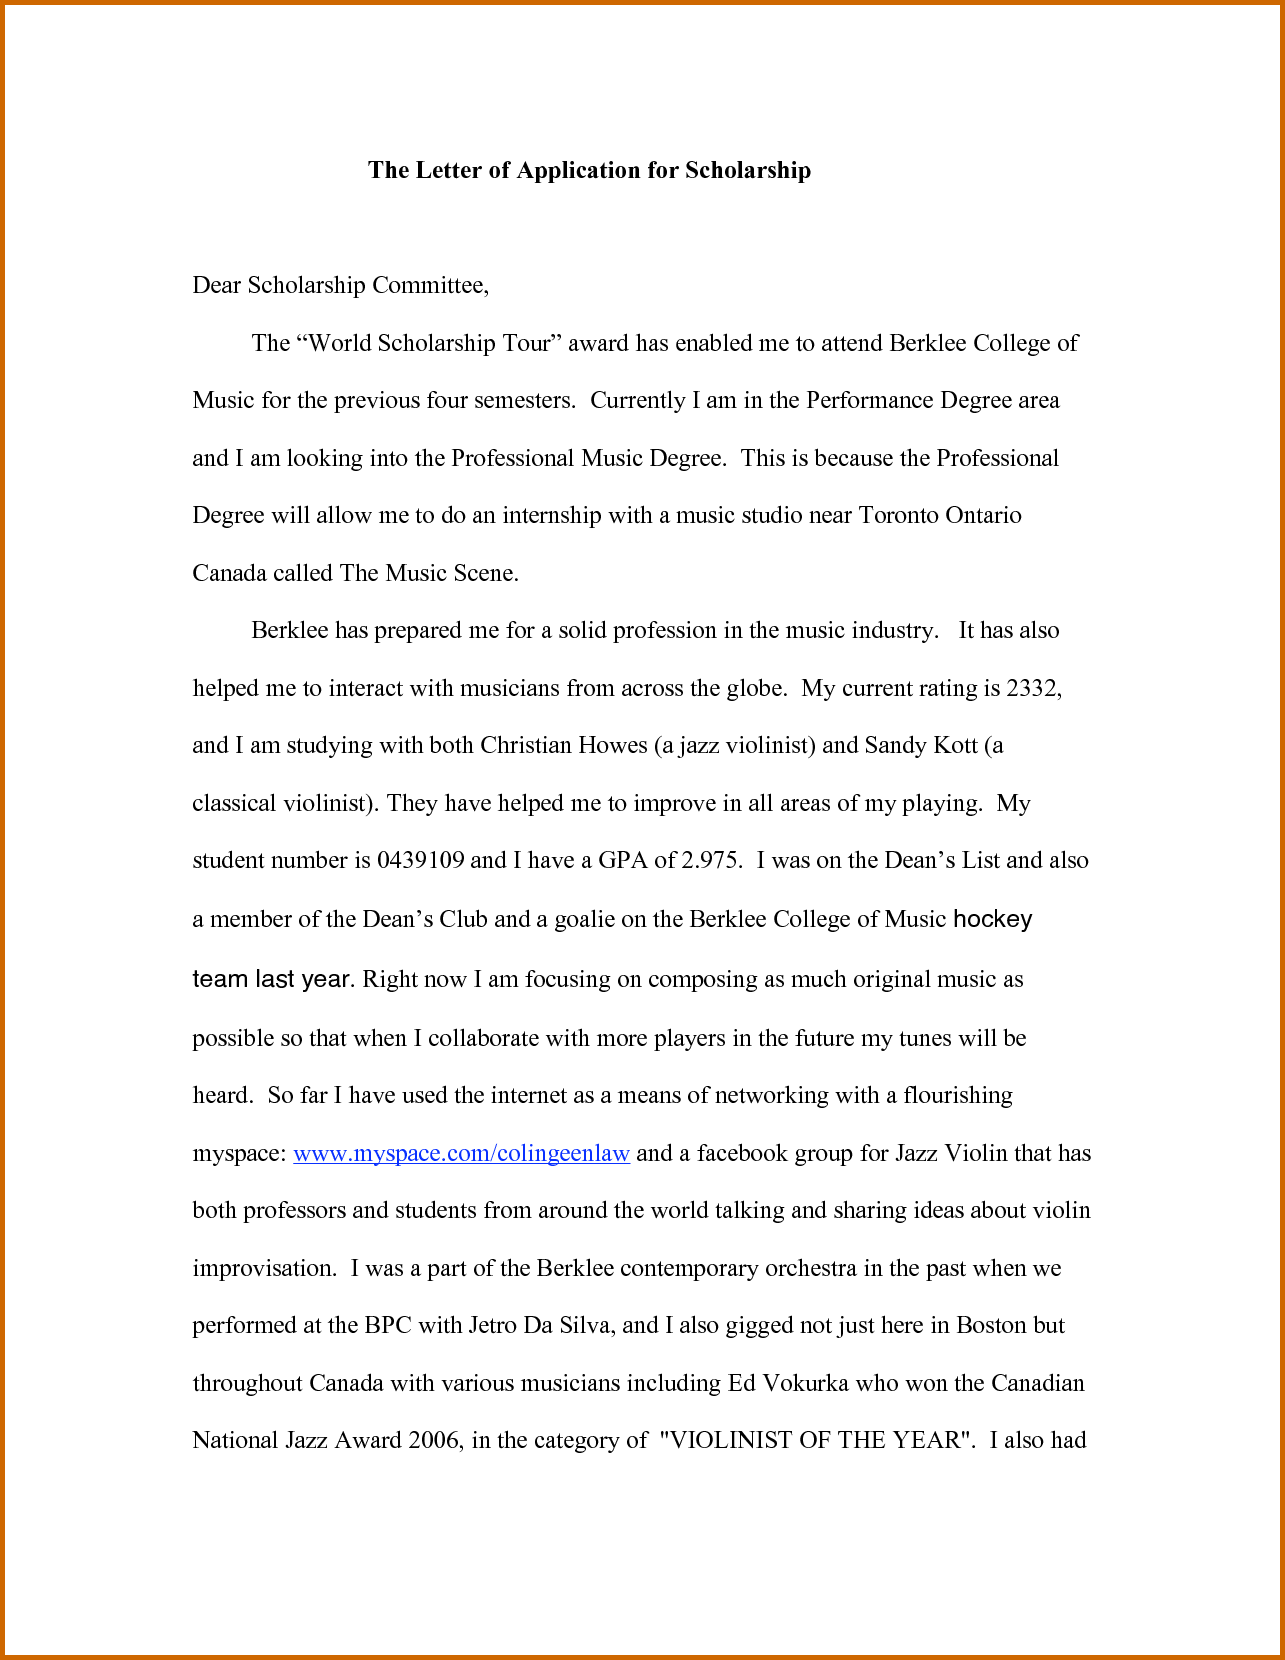 019 How To Write Essay Application For Scholarship Amazing About Yourself An A Job Interview Titles In Paper Full